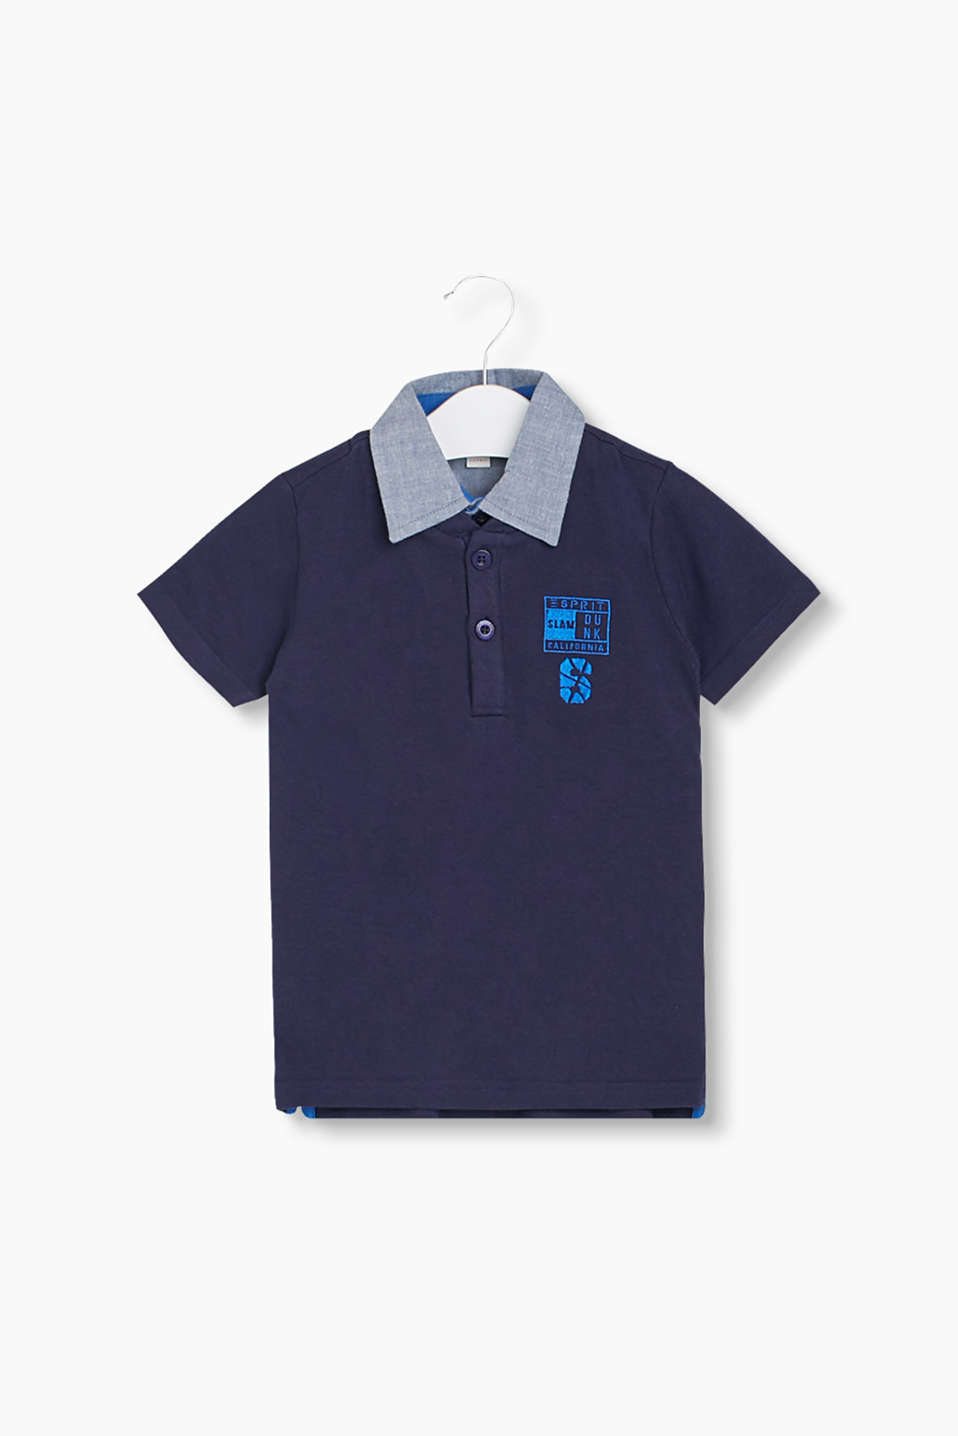 Trendy 2-in-1 look: Piqué polo shirt with chambray collar